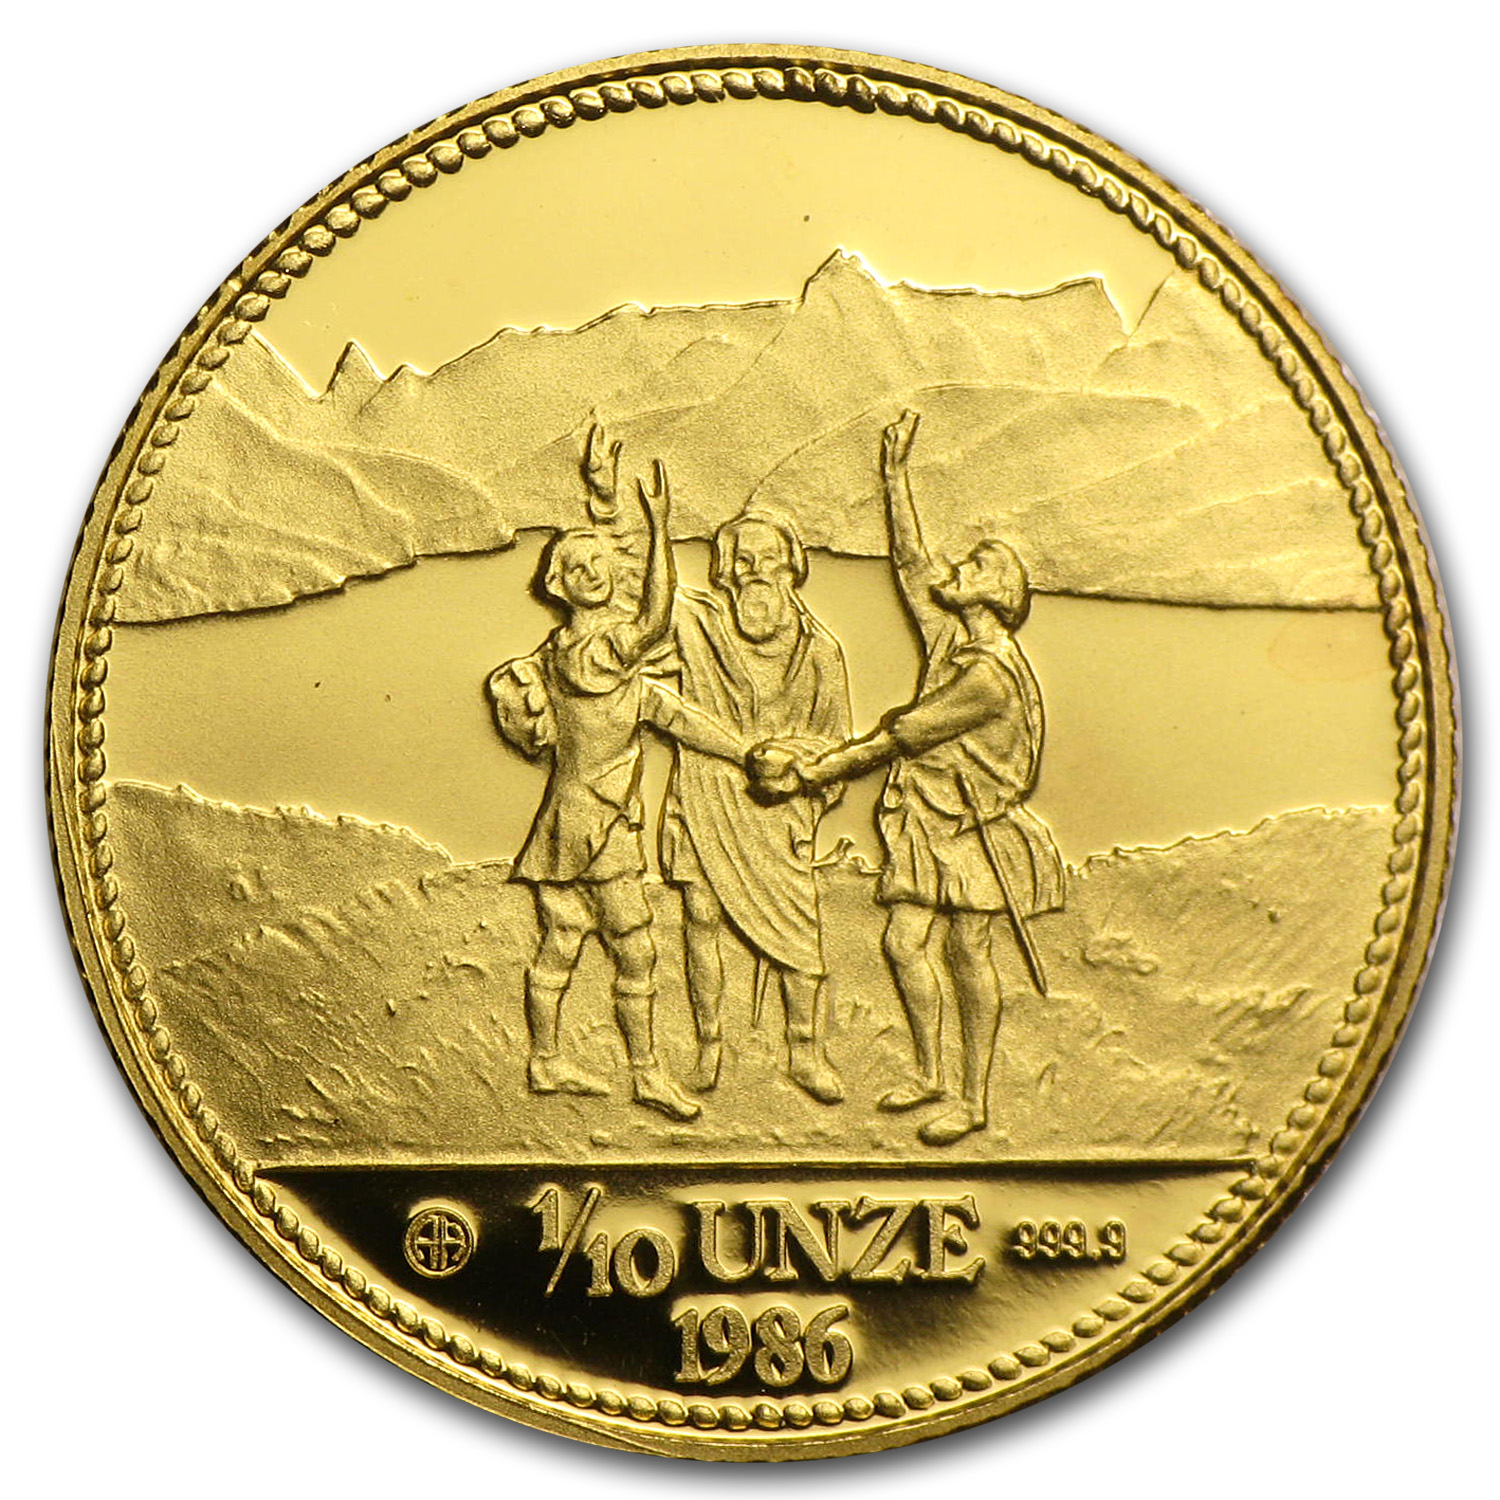 1986 Switzerland 1/10 Unze Gold Eternal Pact Proof